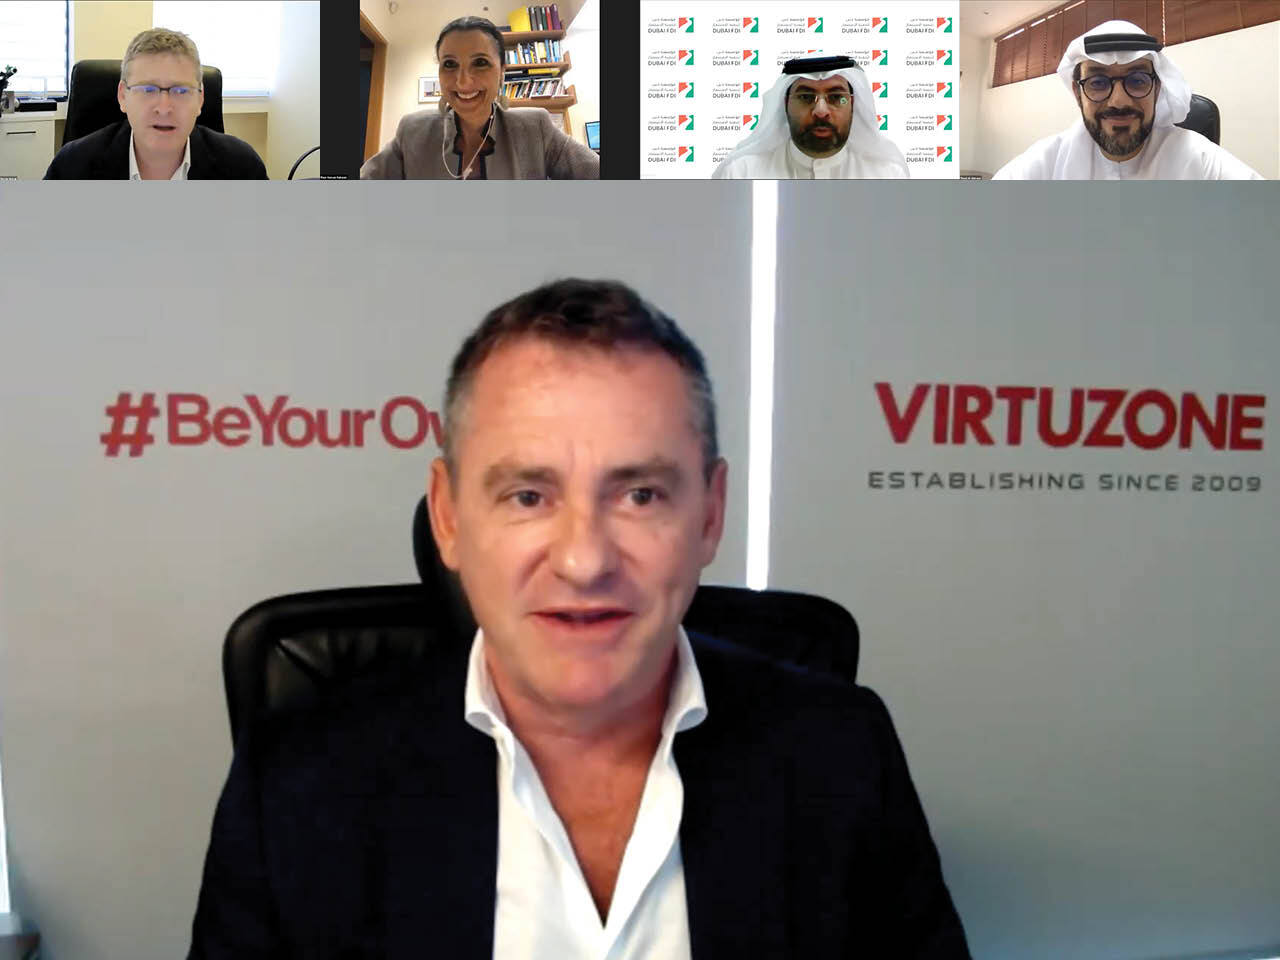 Neil interview with UAE-Israel Business Council